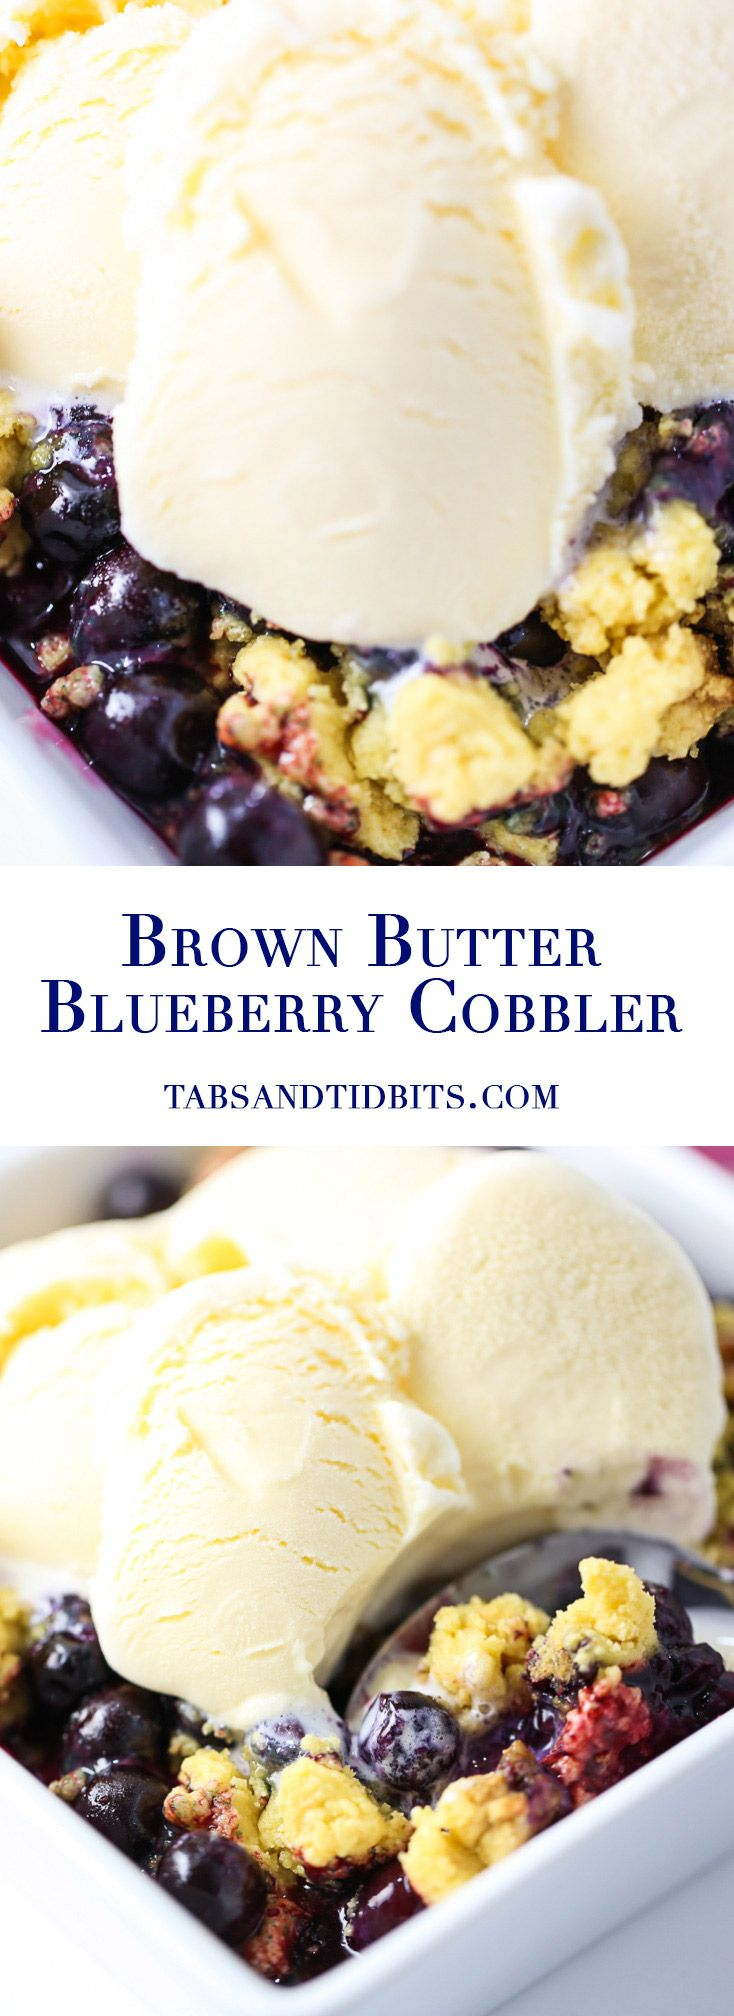 Brown Butter Blueberry Cobbler - A 4-ingredient blueberry cobbler with a rich brown butter streusel topping!